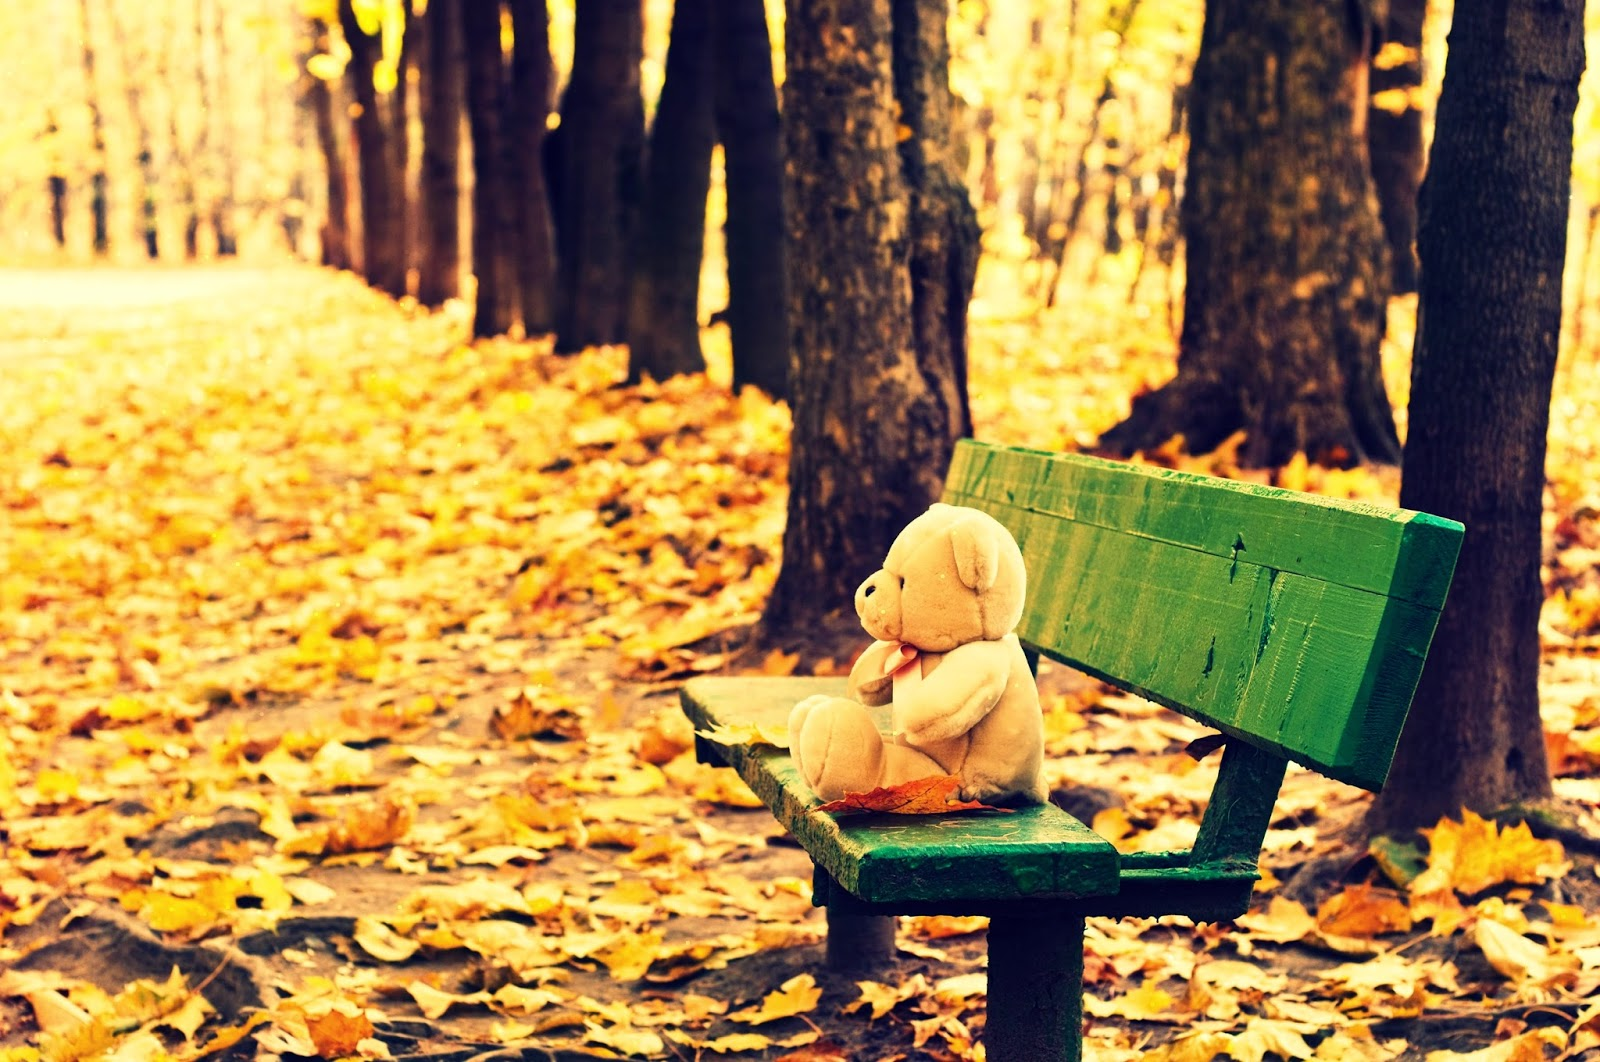 Cute-teddy-bear-feeling-alone-sitting-in-park-chair-3324x2208.jpg